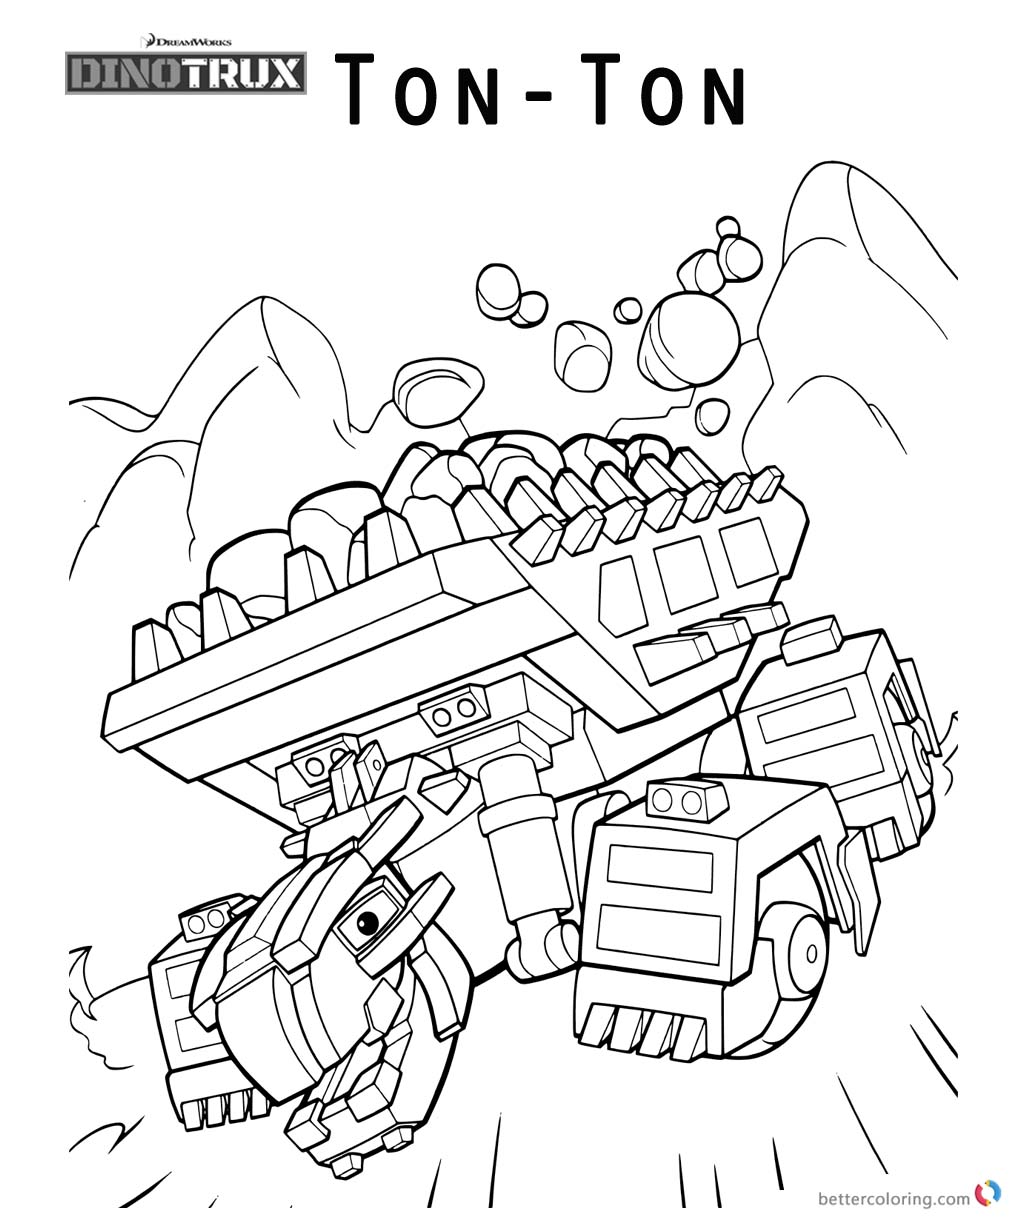 Dinotrux Ton-Ton coloring pages printable